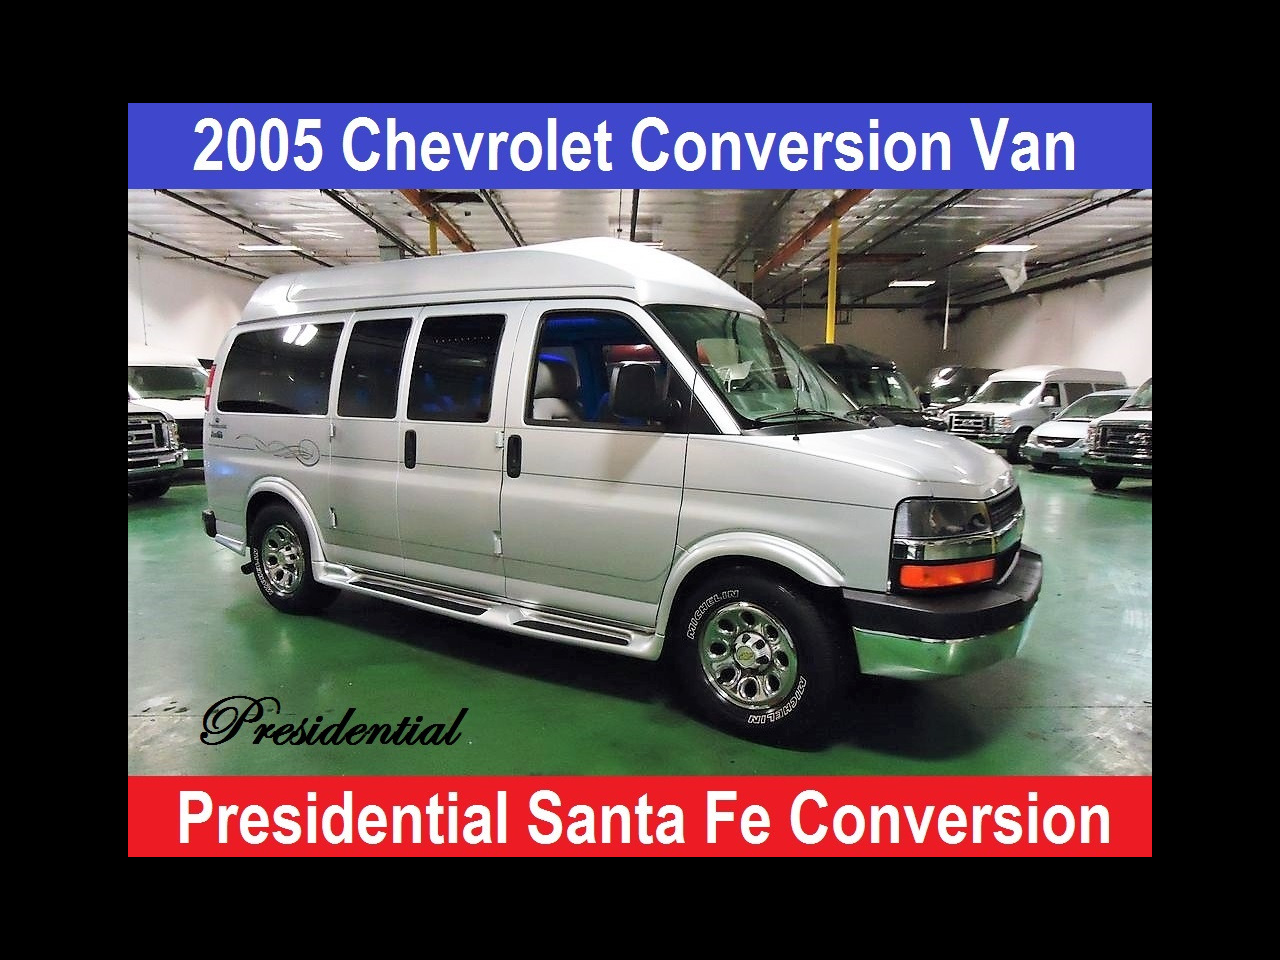 2005 Chevrolet Conversion Van Presidential SantaFe Conversion Van